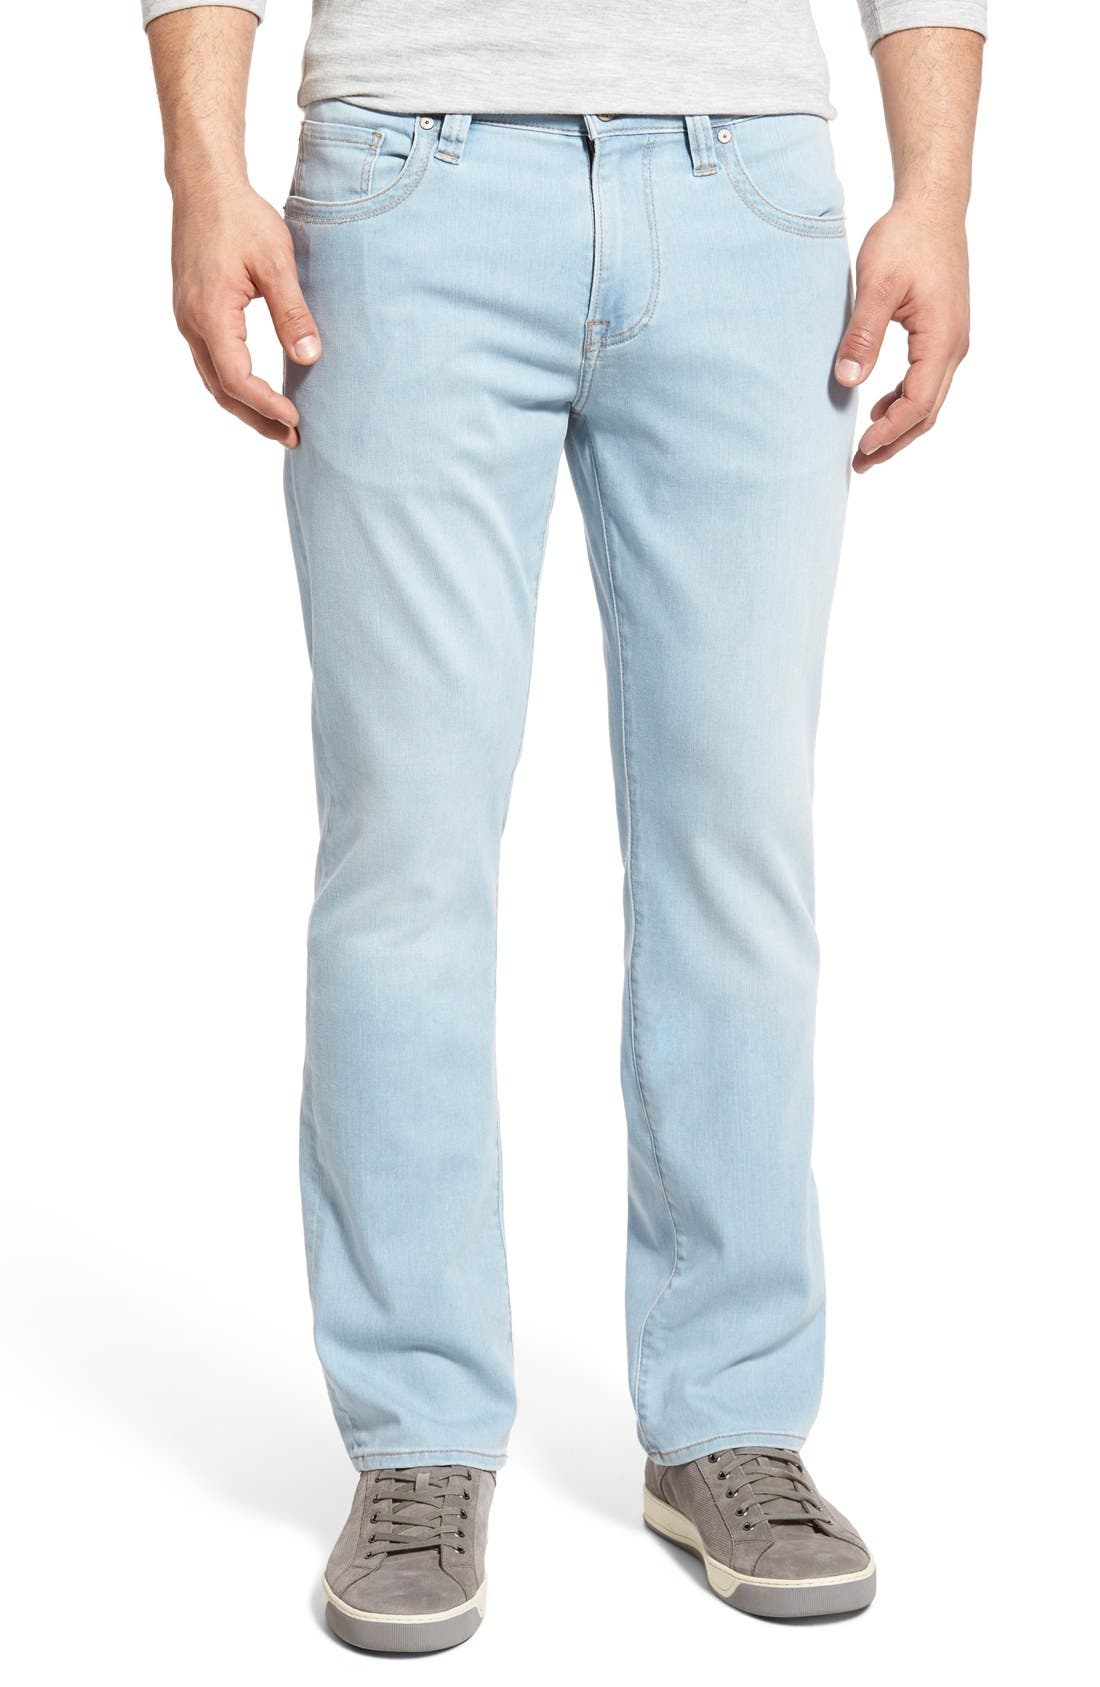 'Charisma' Relaxed Fit Jeans,                             Main thumbnail 1, color,                             Bleach Hawaii